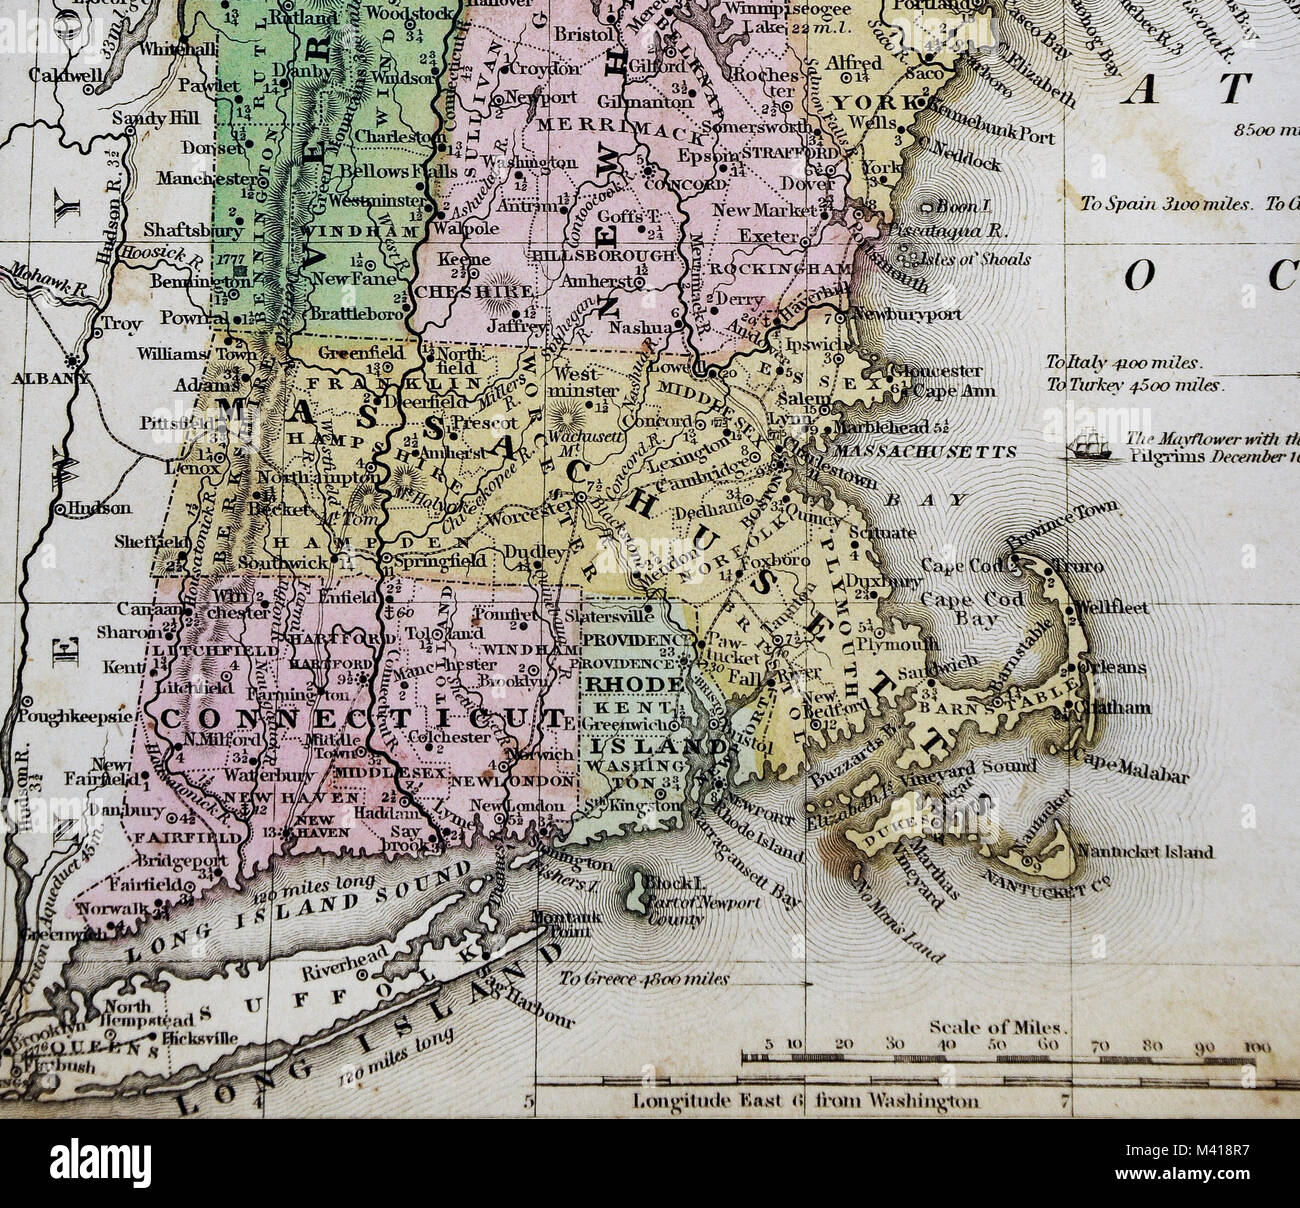 Antique Map Of Massachusetts Stock Photos Antique Map Of - Antique map of maine